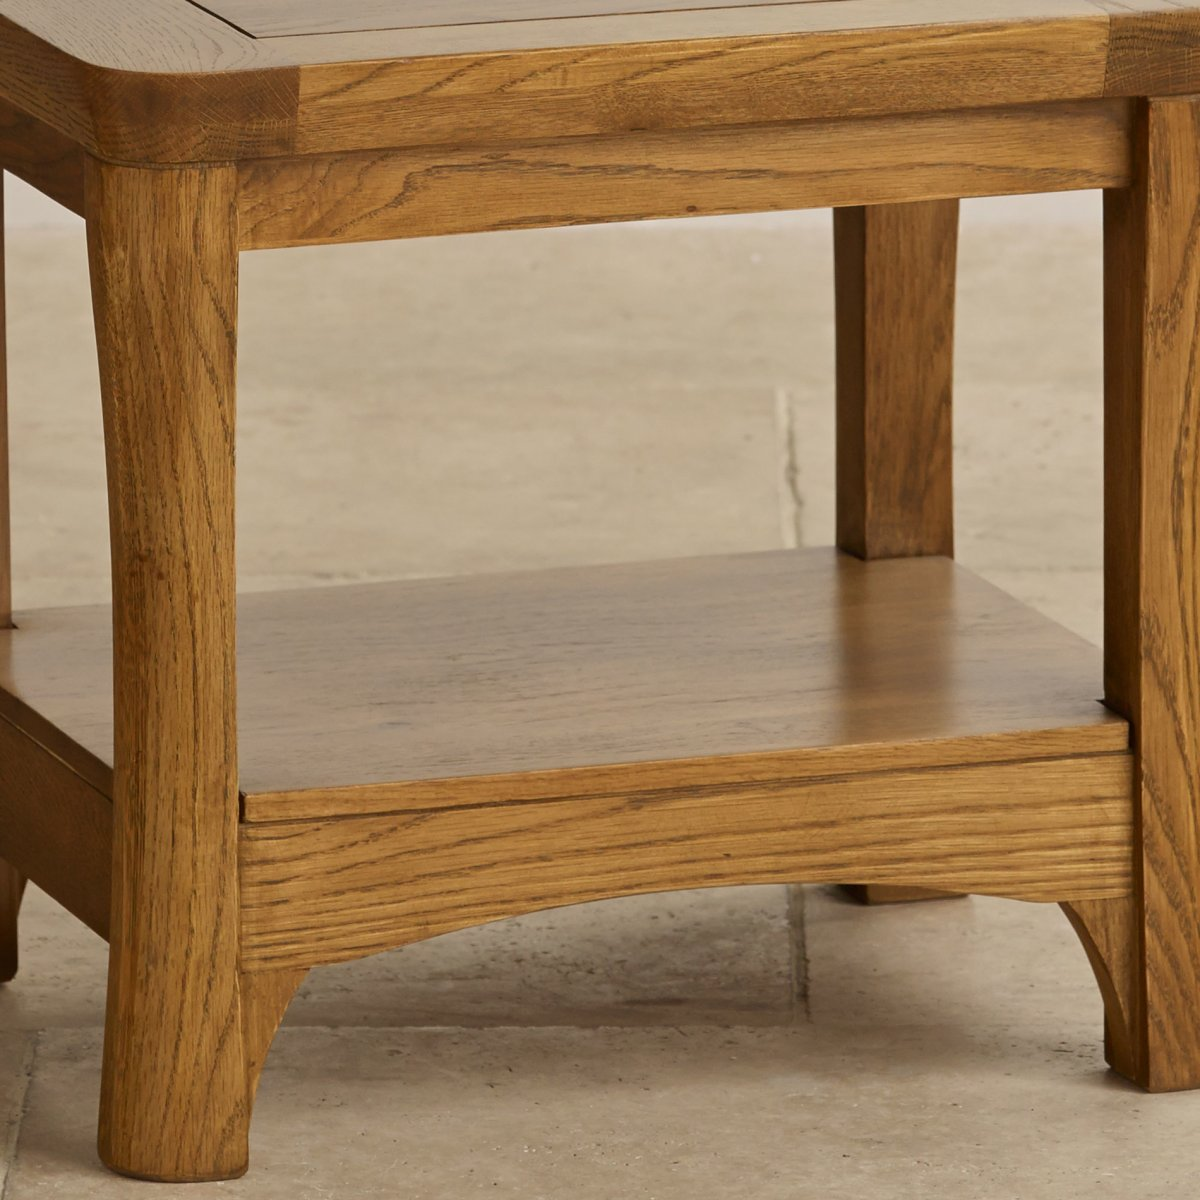 Orrick Lamp Table In Rustic Solid Oak Oak Furniture Land